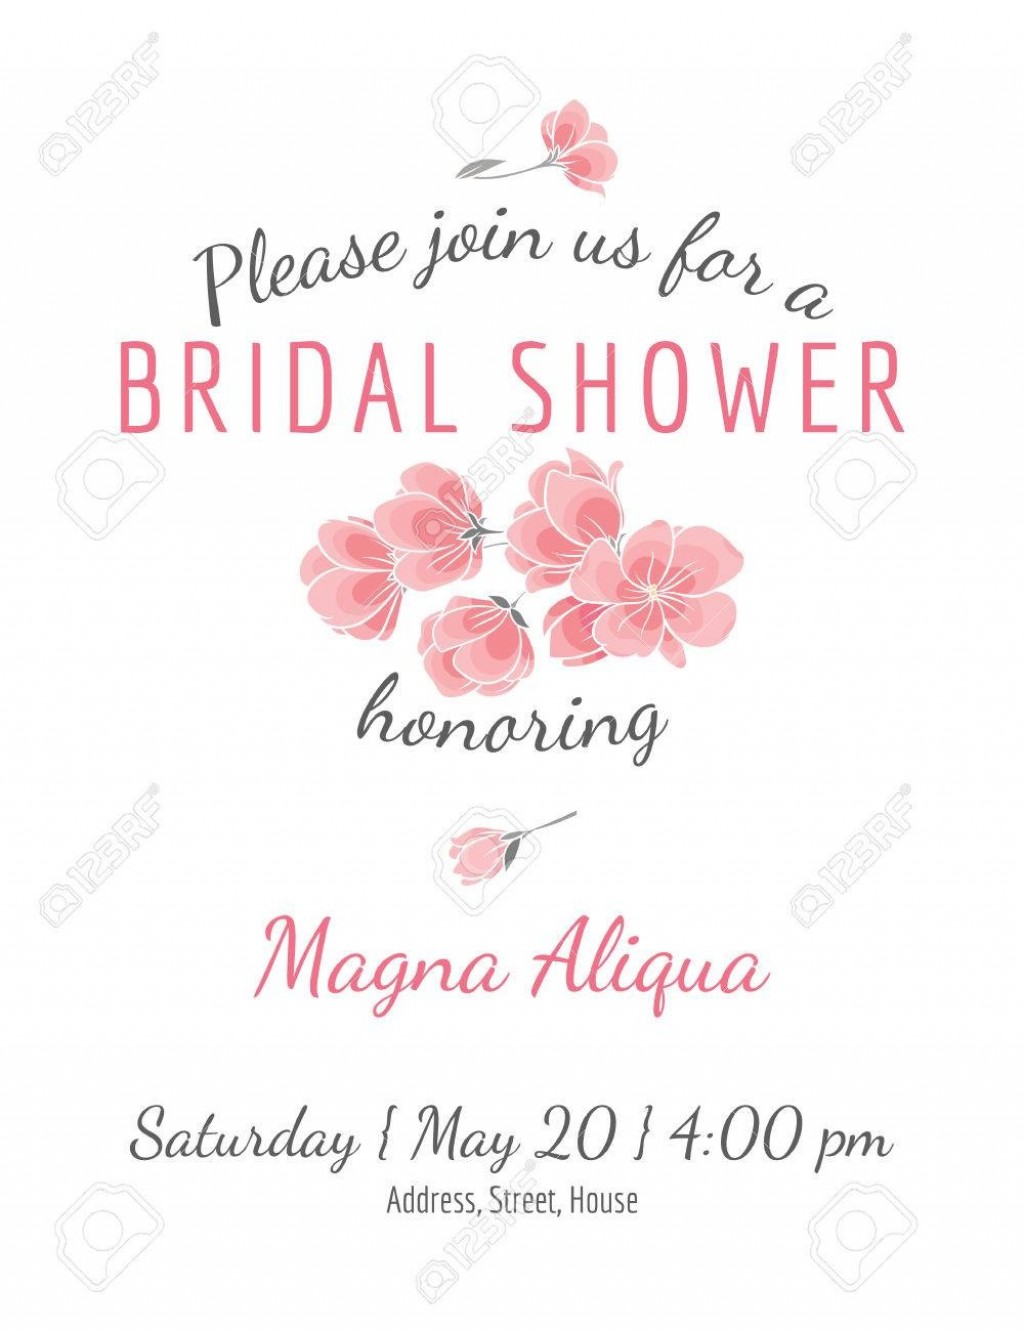 002 Unforgettable Bridal Shower Card Template High Definition  Invitation Free Download BingoLarge